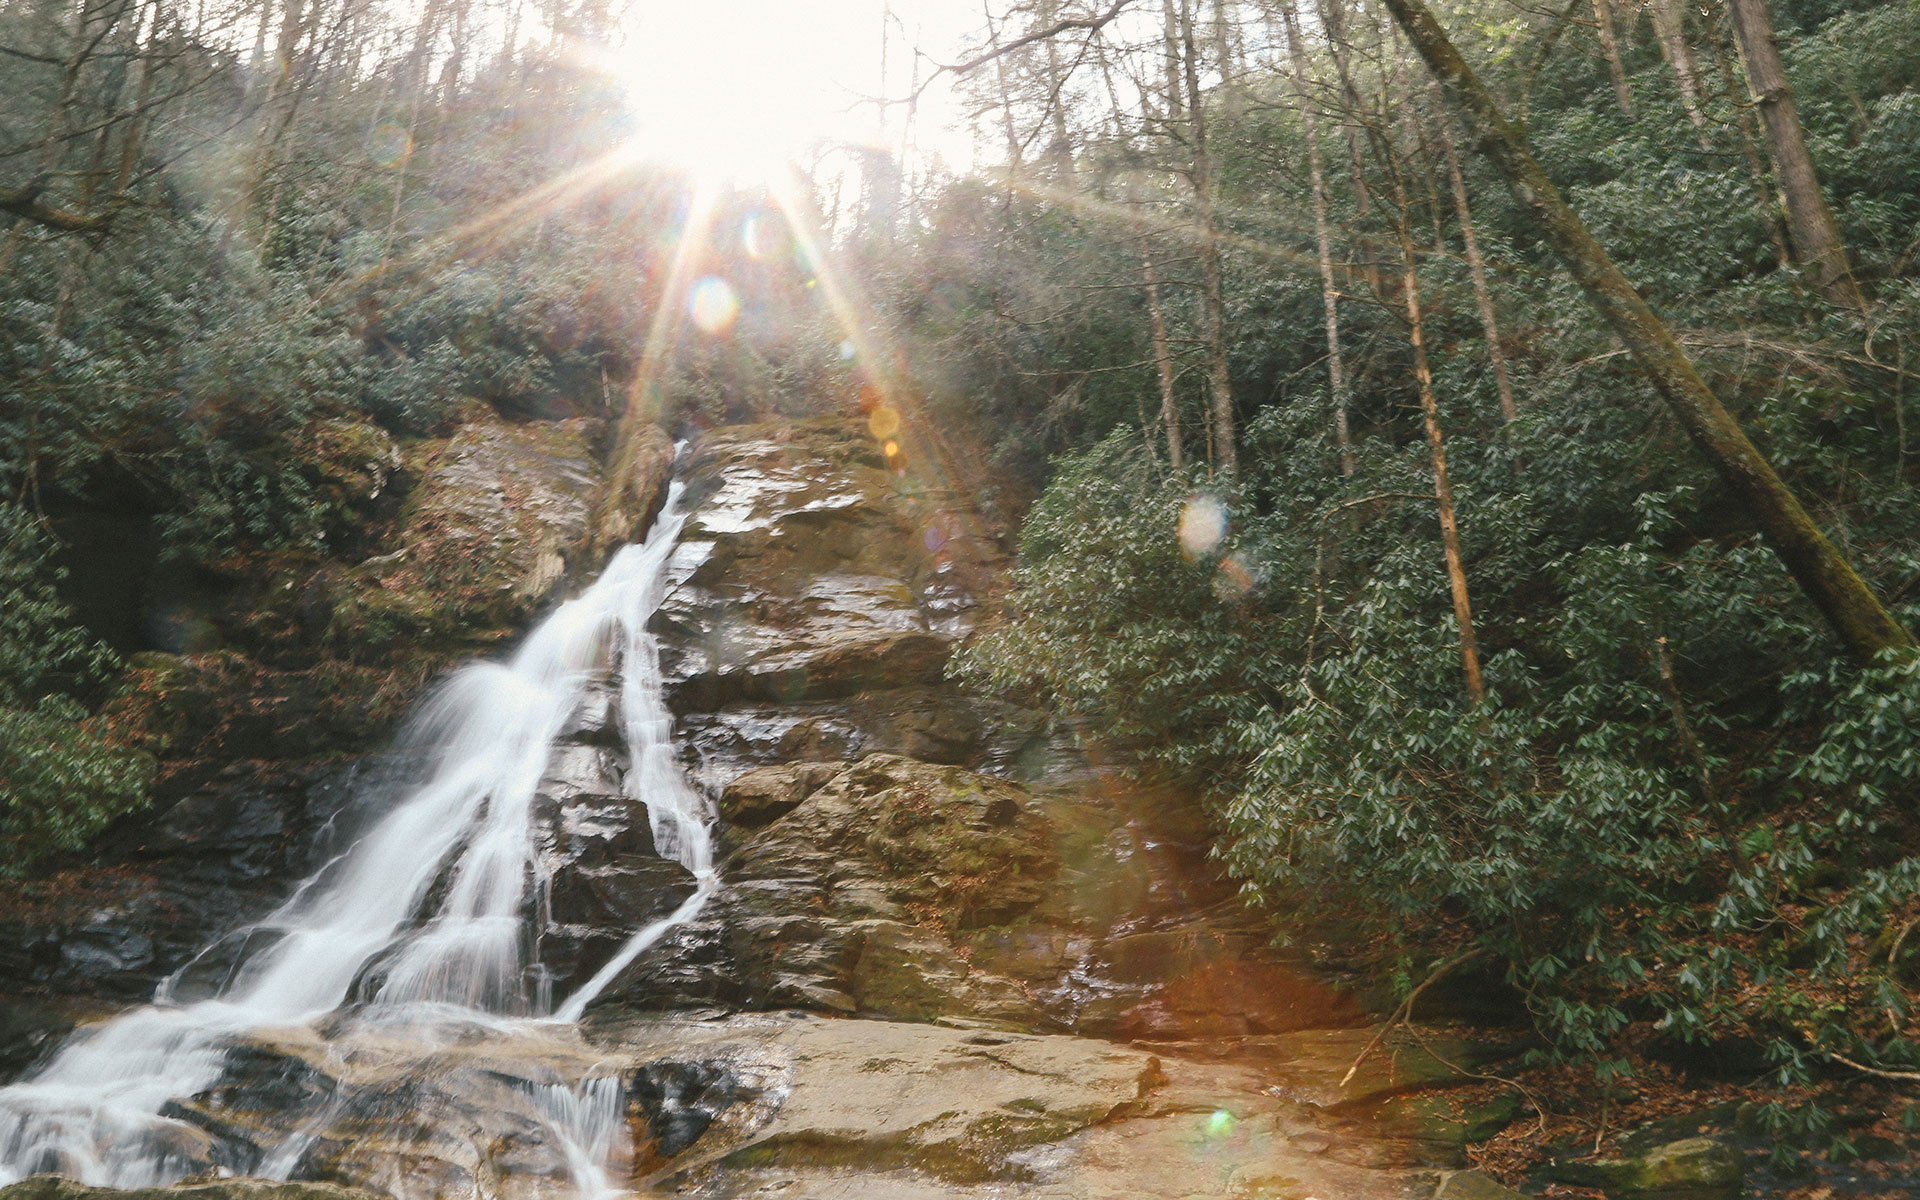 High Shoals Falls in Dallas, Georgia | Wander North Georgia